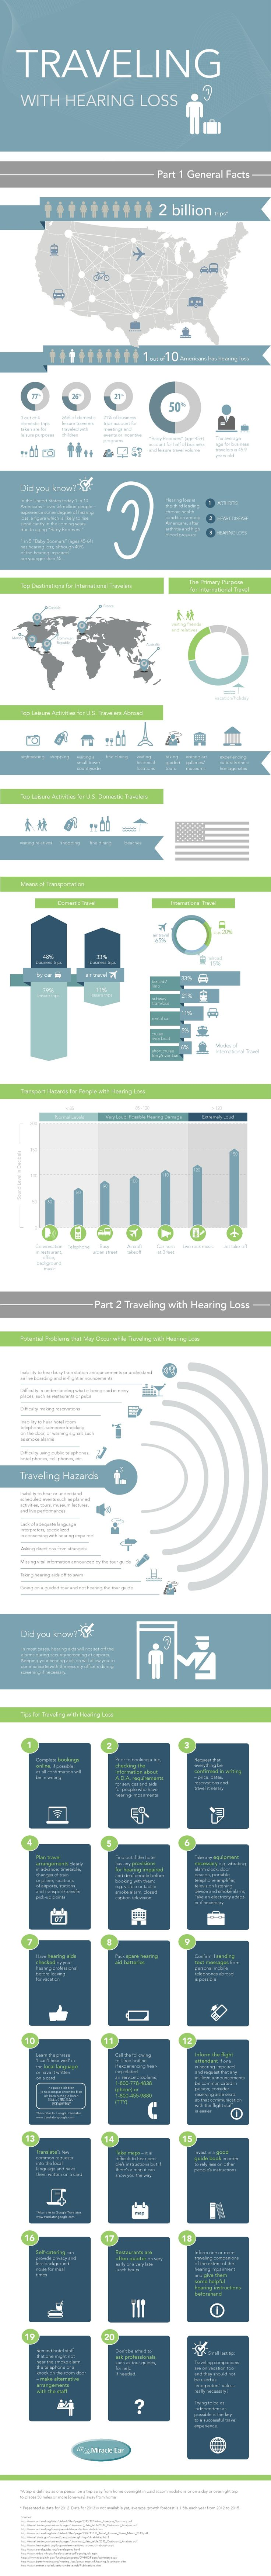 best images about hearing impairment traveling hearing loss travel hearingloss health infographic